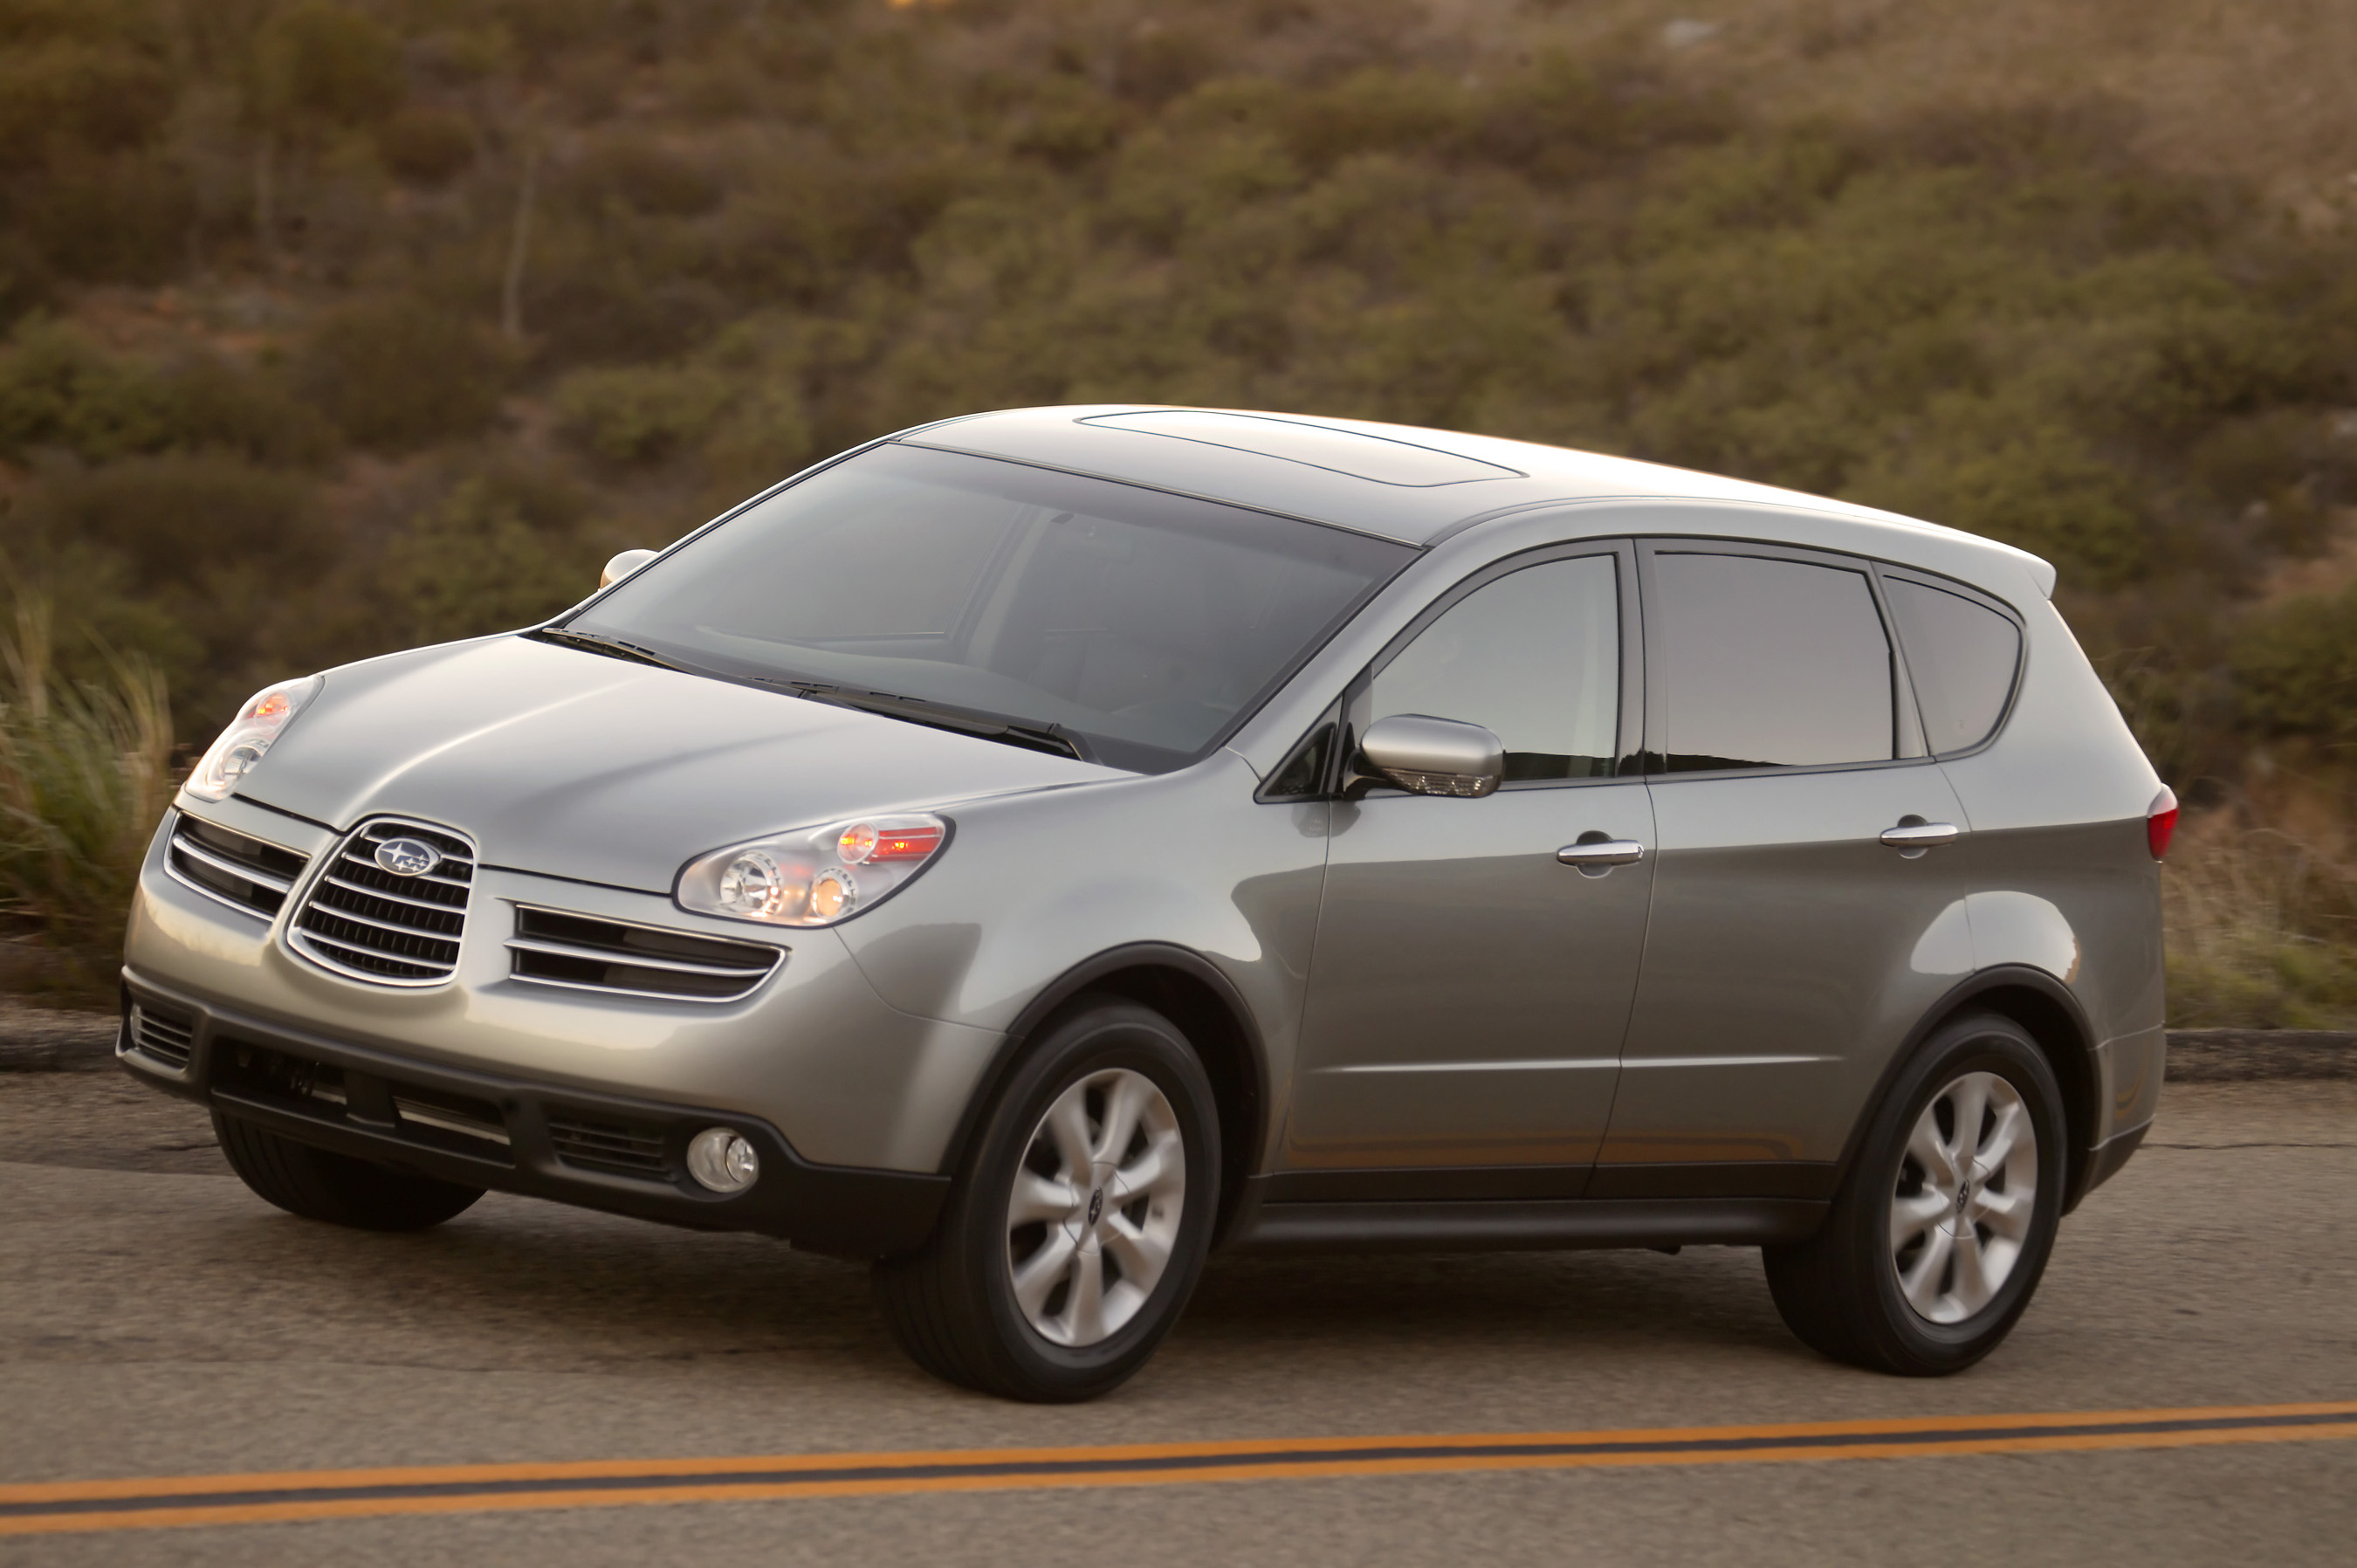 2006 Subaru Tribeca Review